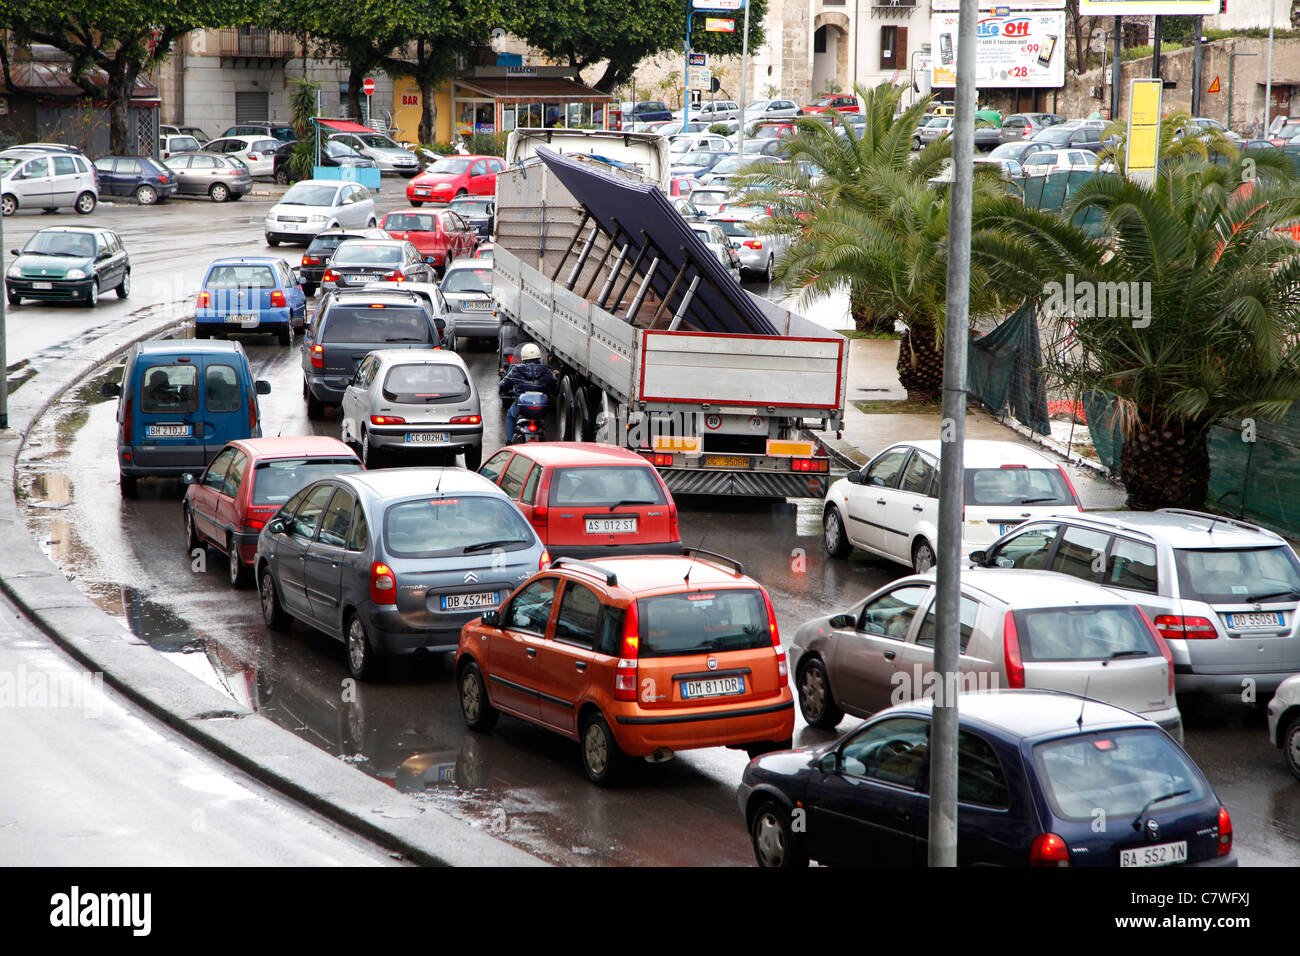 road with traffic jam cars and trucks on a rainy day palermo stock photo royalty free image. Black Bedroom Furniture Sets. Home Design Ideas